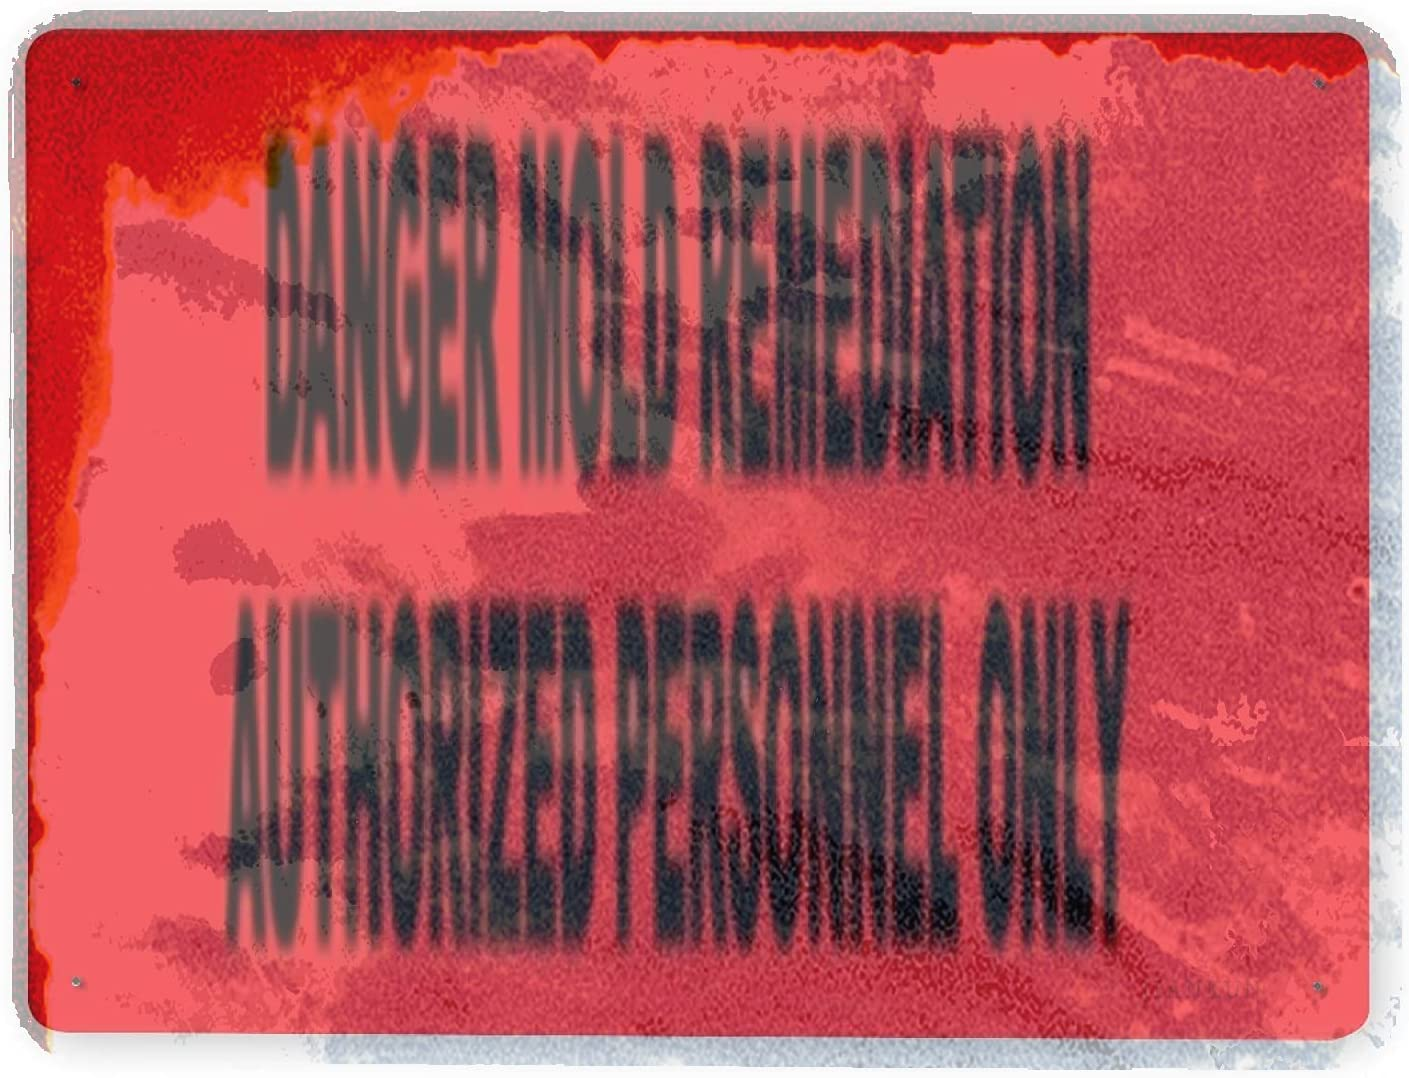 J.DXHYA New Shipping Free Man Cave Decor 2 Pieces Mold Warning Remedia Danger Sign Finally resale start